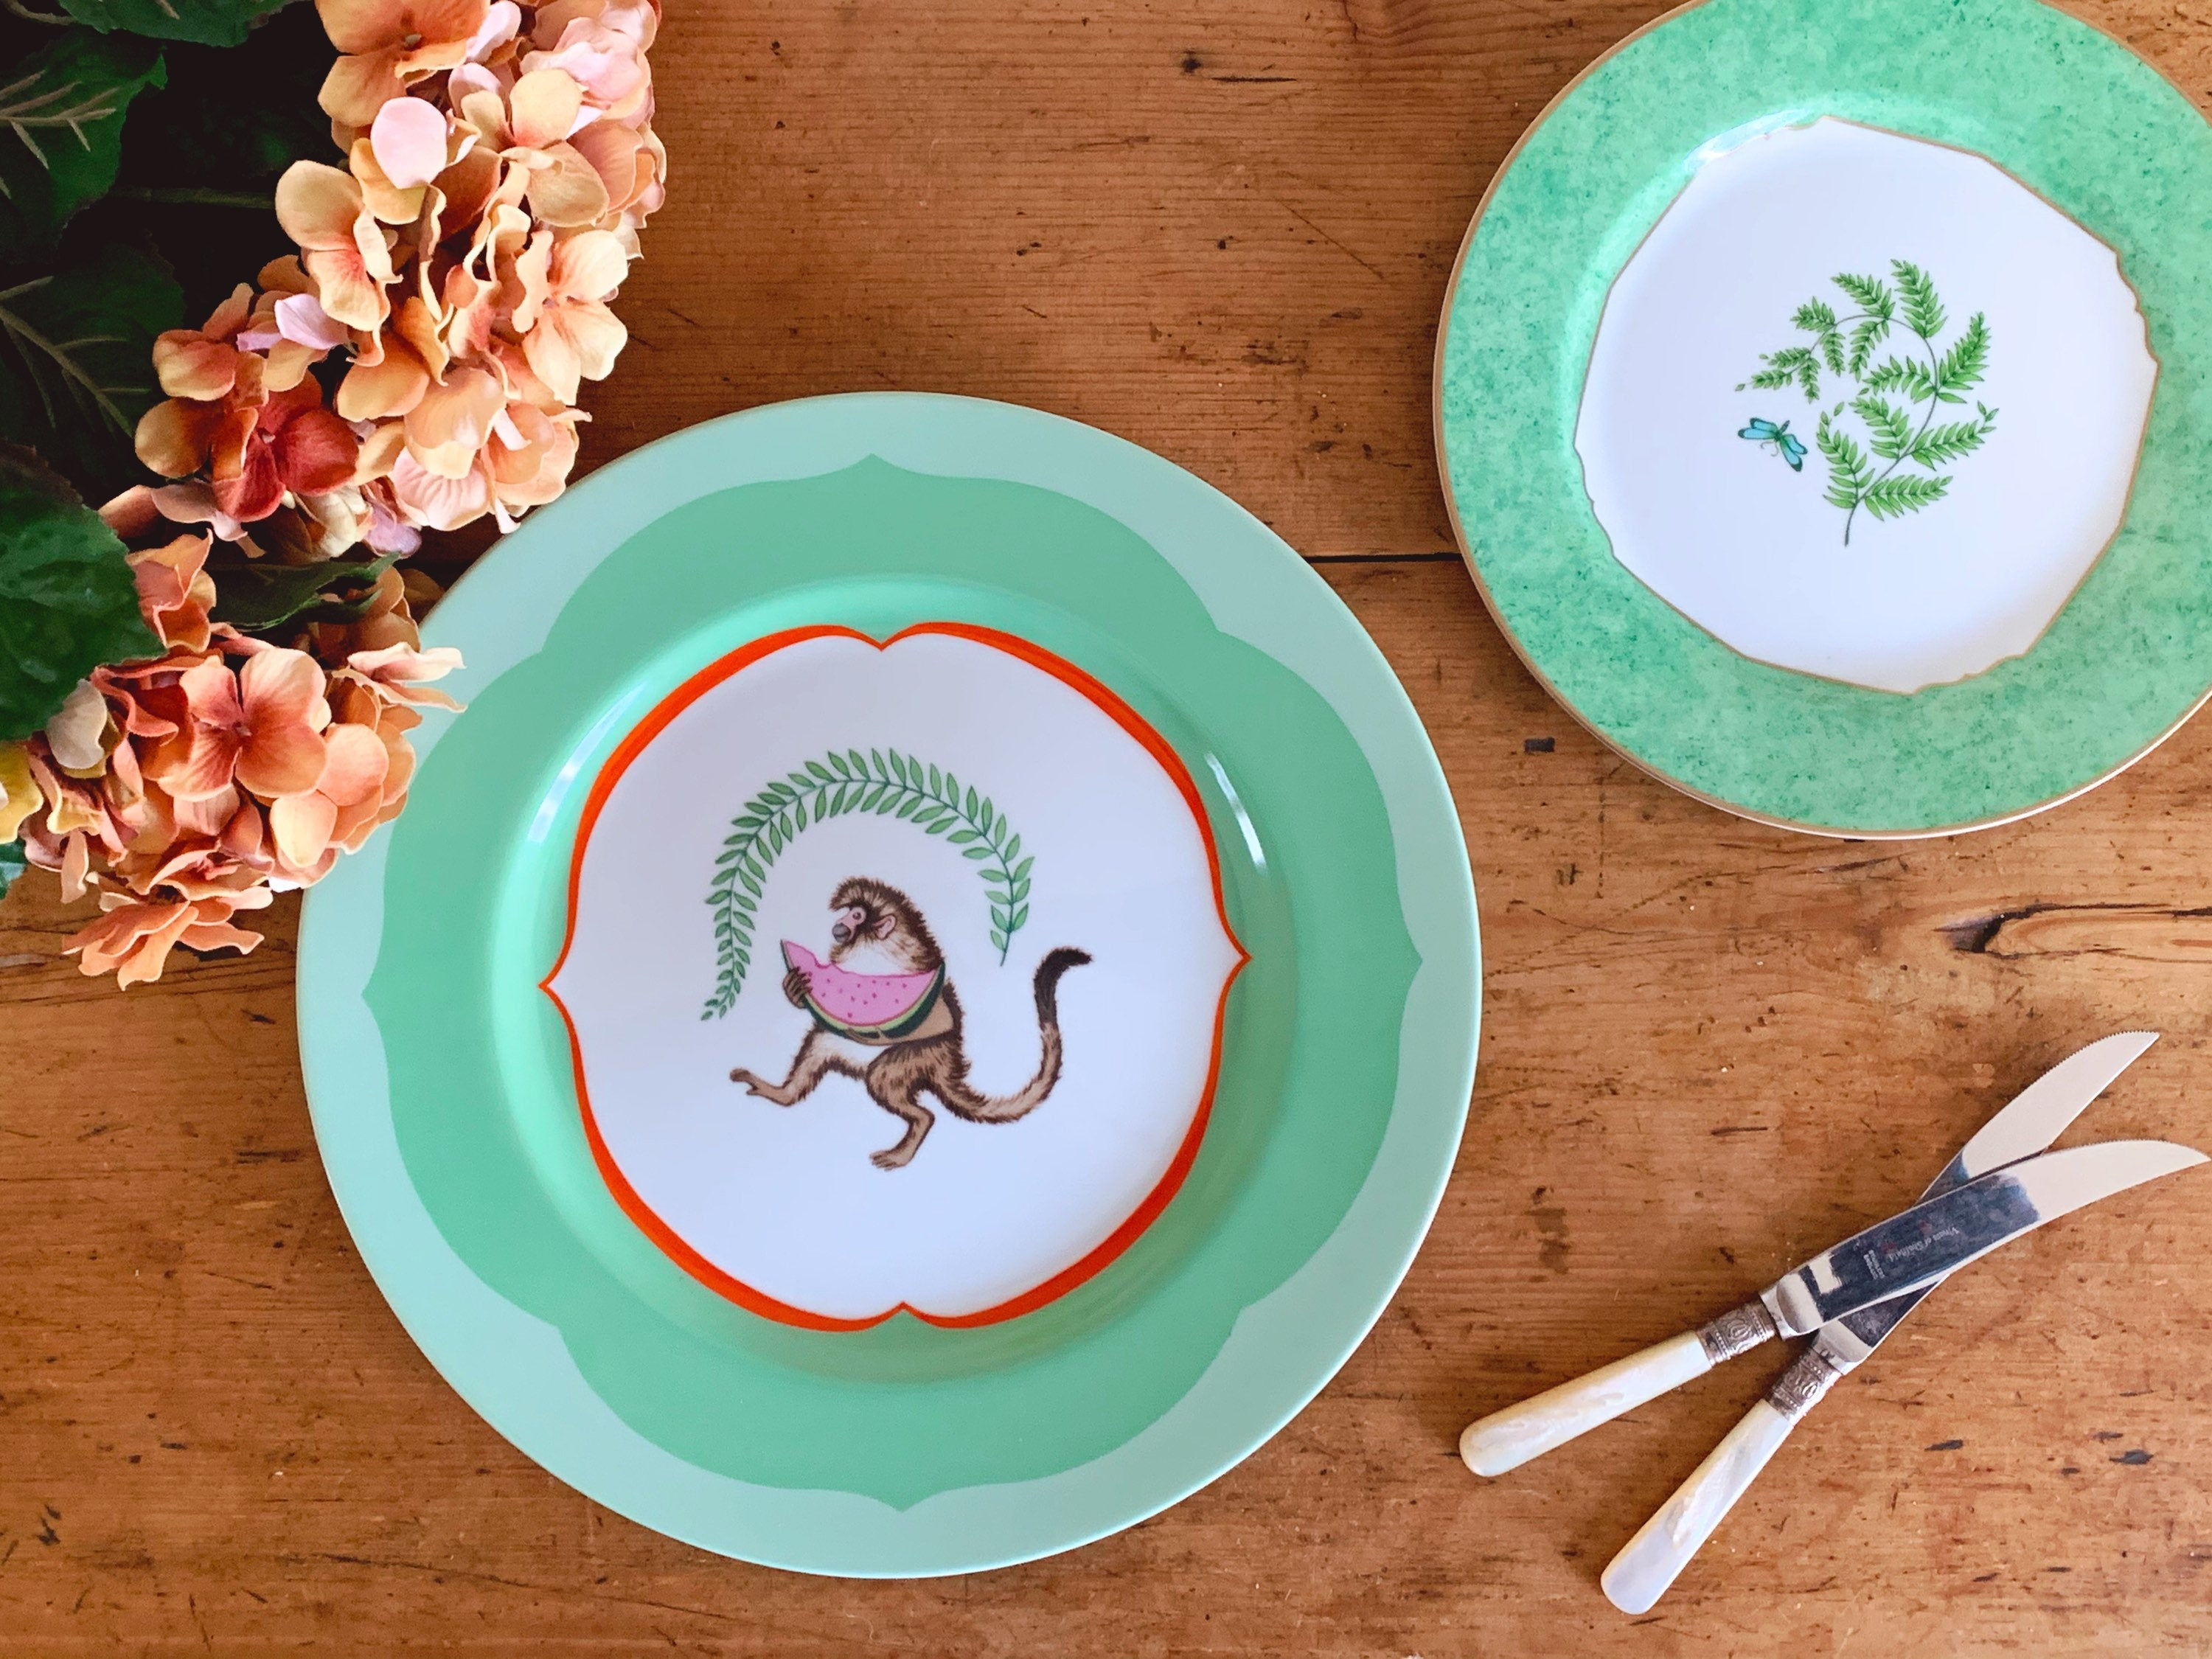 "Lynn Chase Monkey Business 12"" Service Plate Charger and 9"" Fern Fantasy Salad Plate"